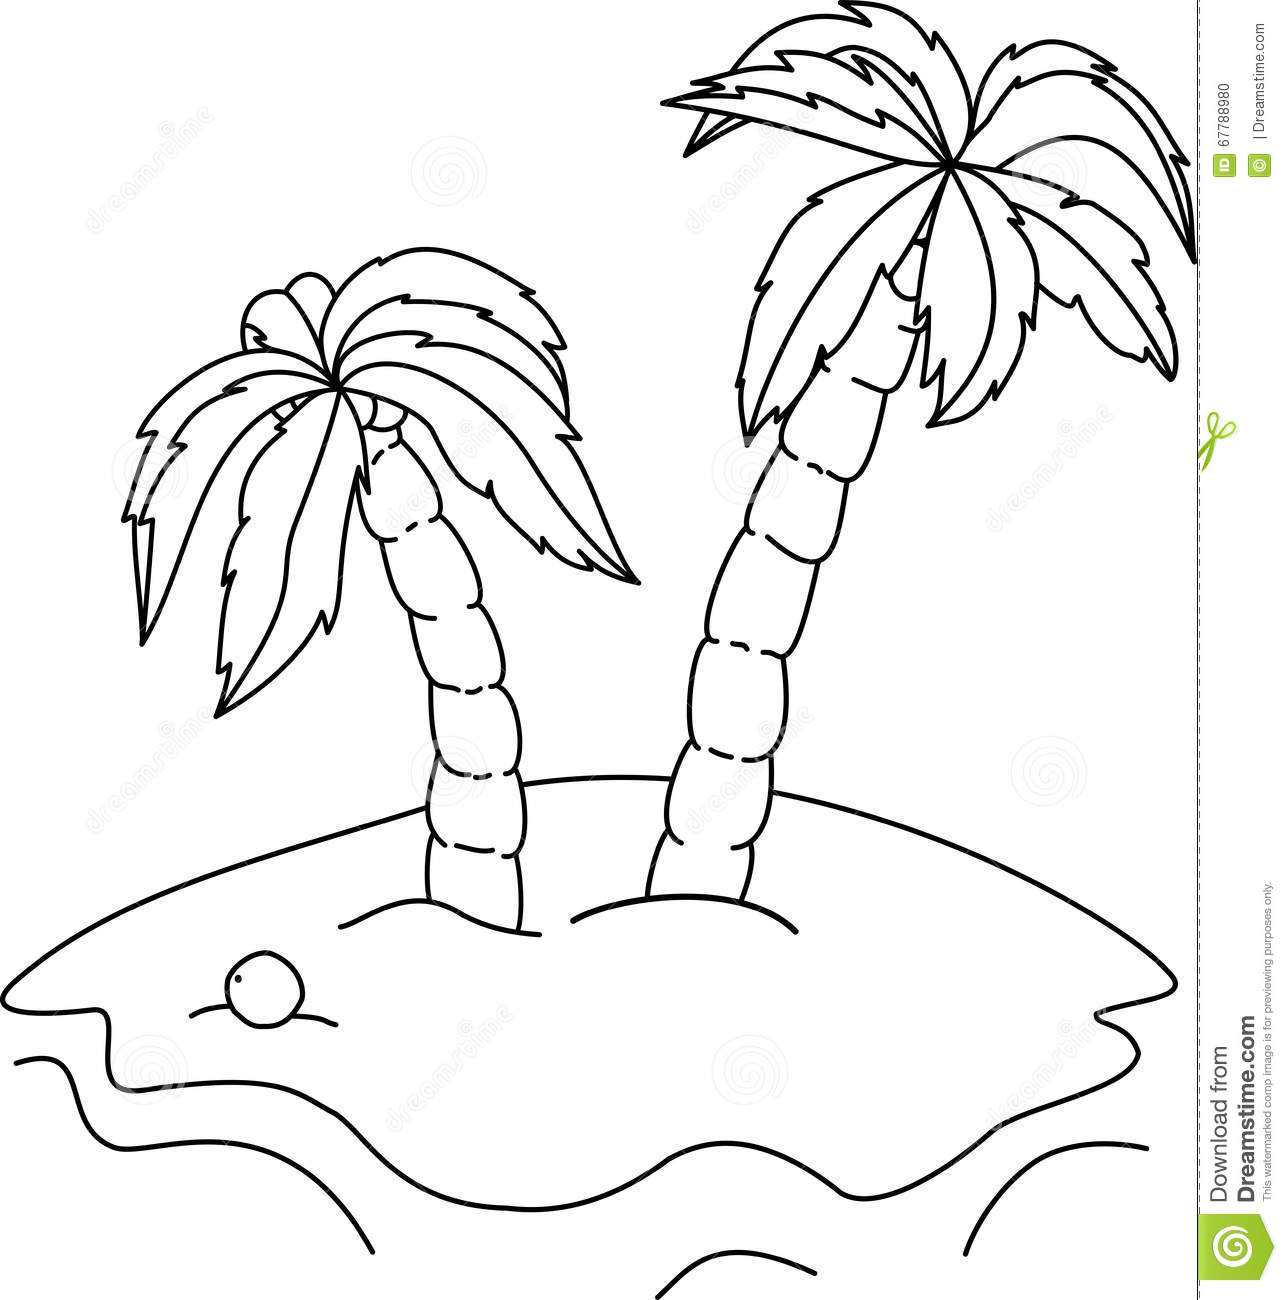 palm coloring page - coloring book palm trees coloring page